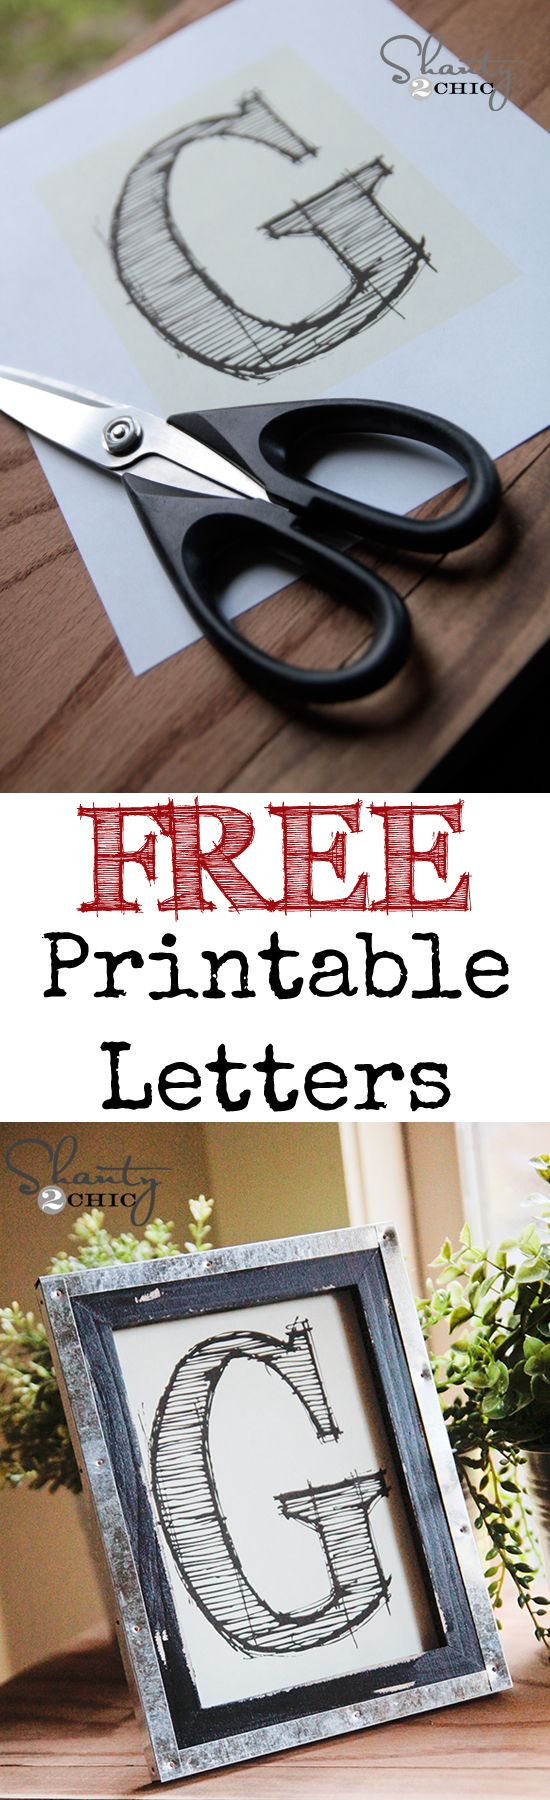 Free Printable Letters!  These are 5x7 and so cute!  Who doesn't love FREE?  Print on full sheet labels..